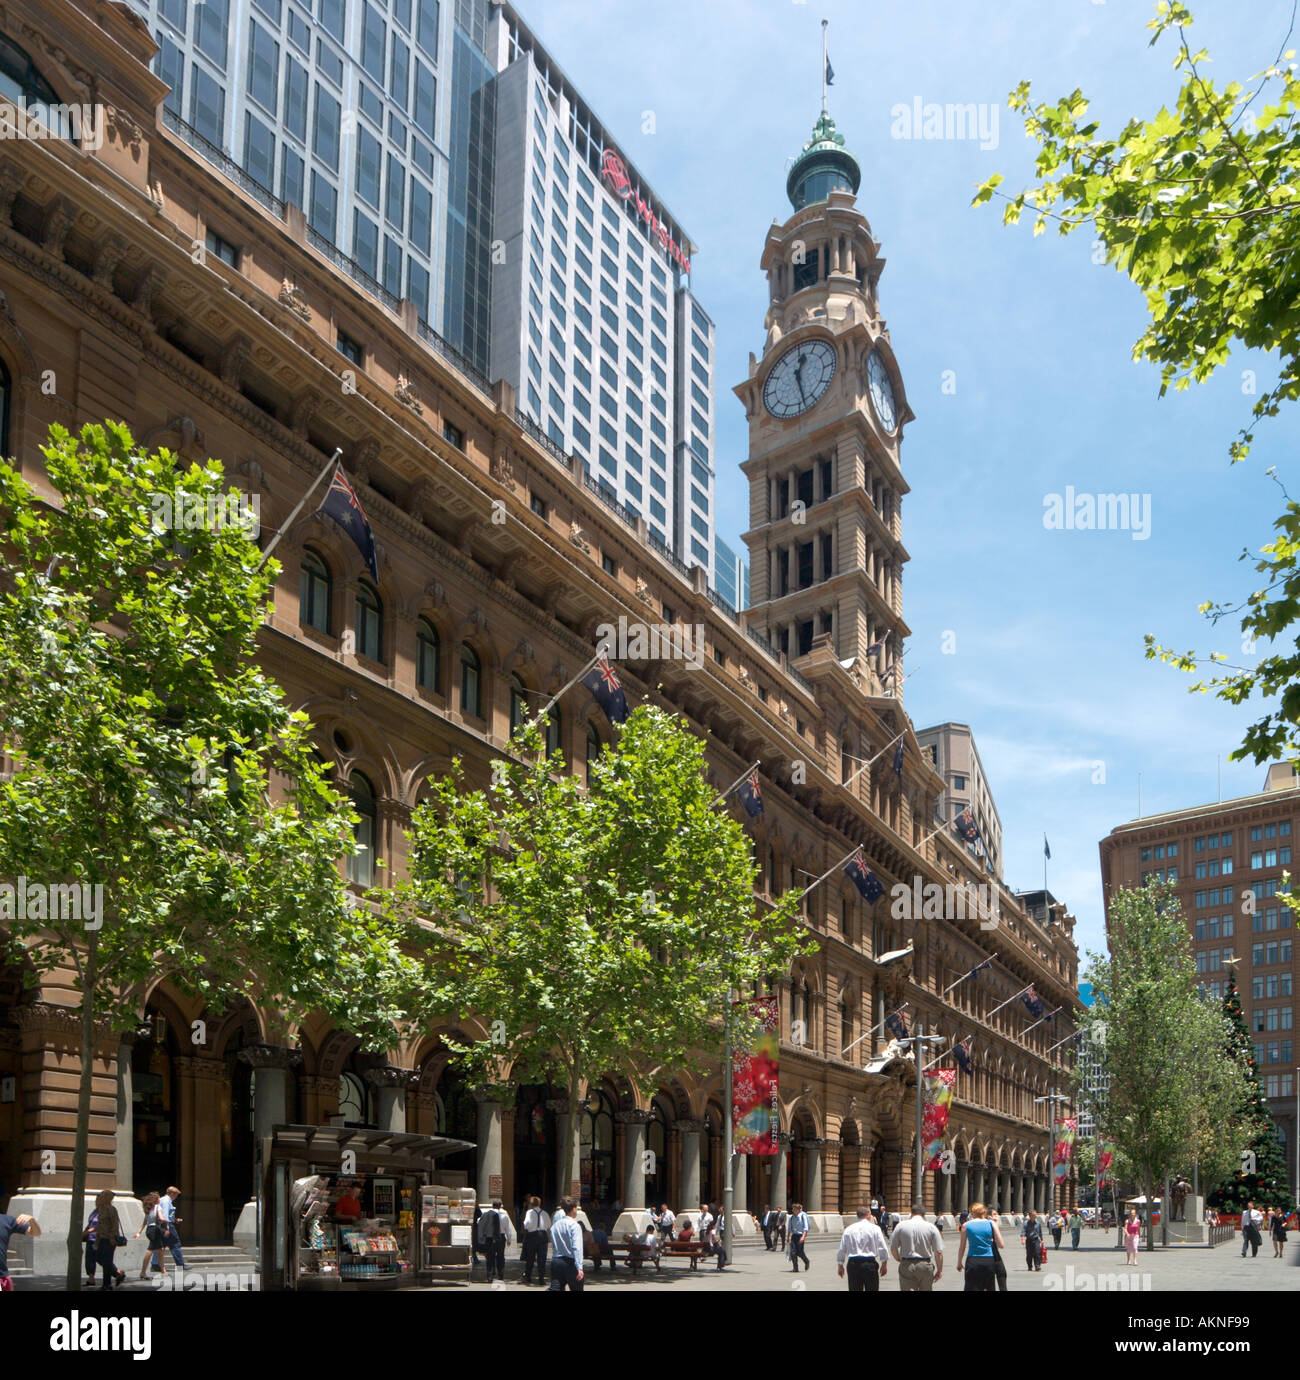 Old General Post Office Building (now a Westin Hotel), Martin Place, Sydney, New South Wales, Australia - Stock Image